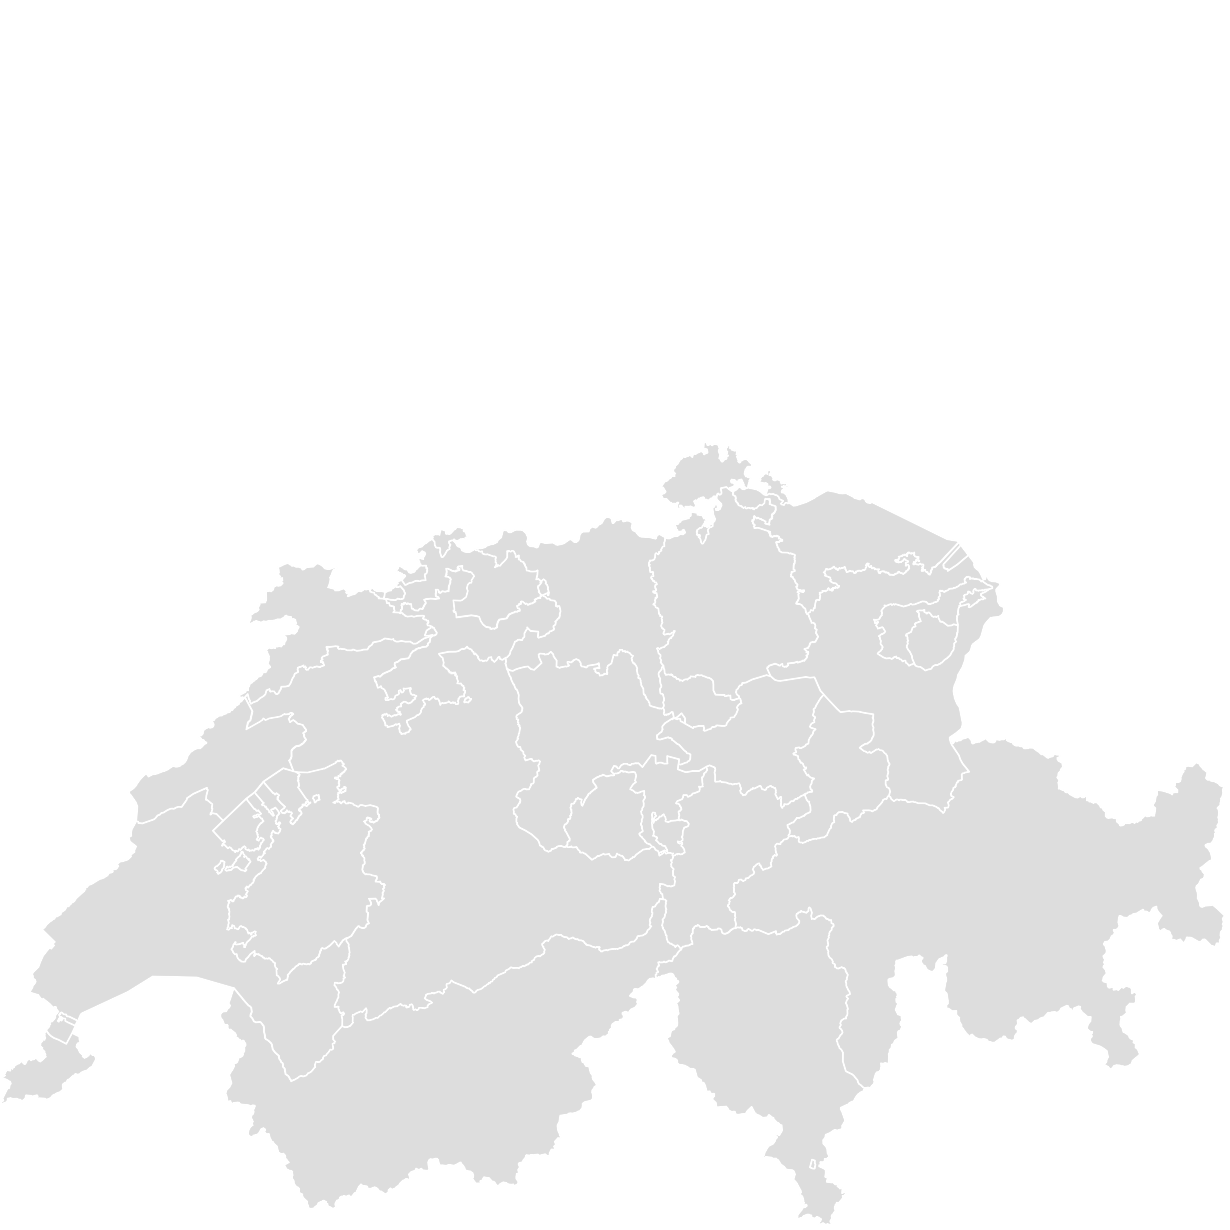 printable outlineblank map of switzerland